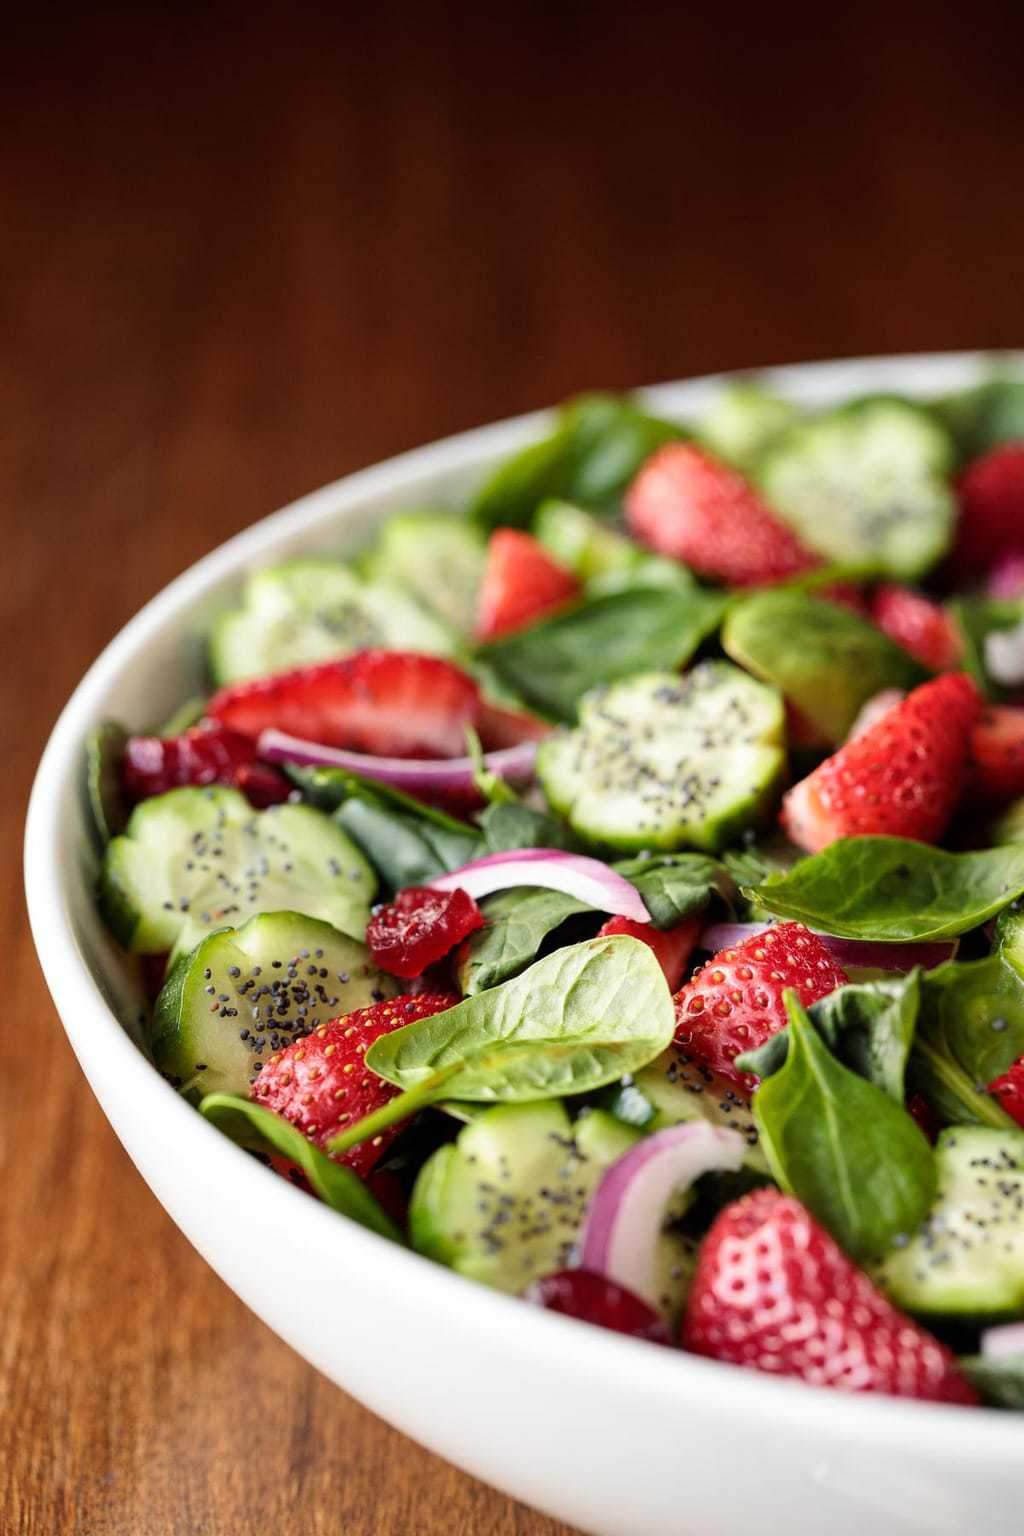 Photo of part of a Strawberry Spinach Salad in a white bowl on a wood table.